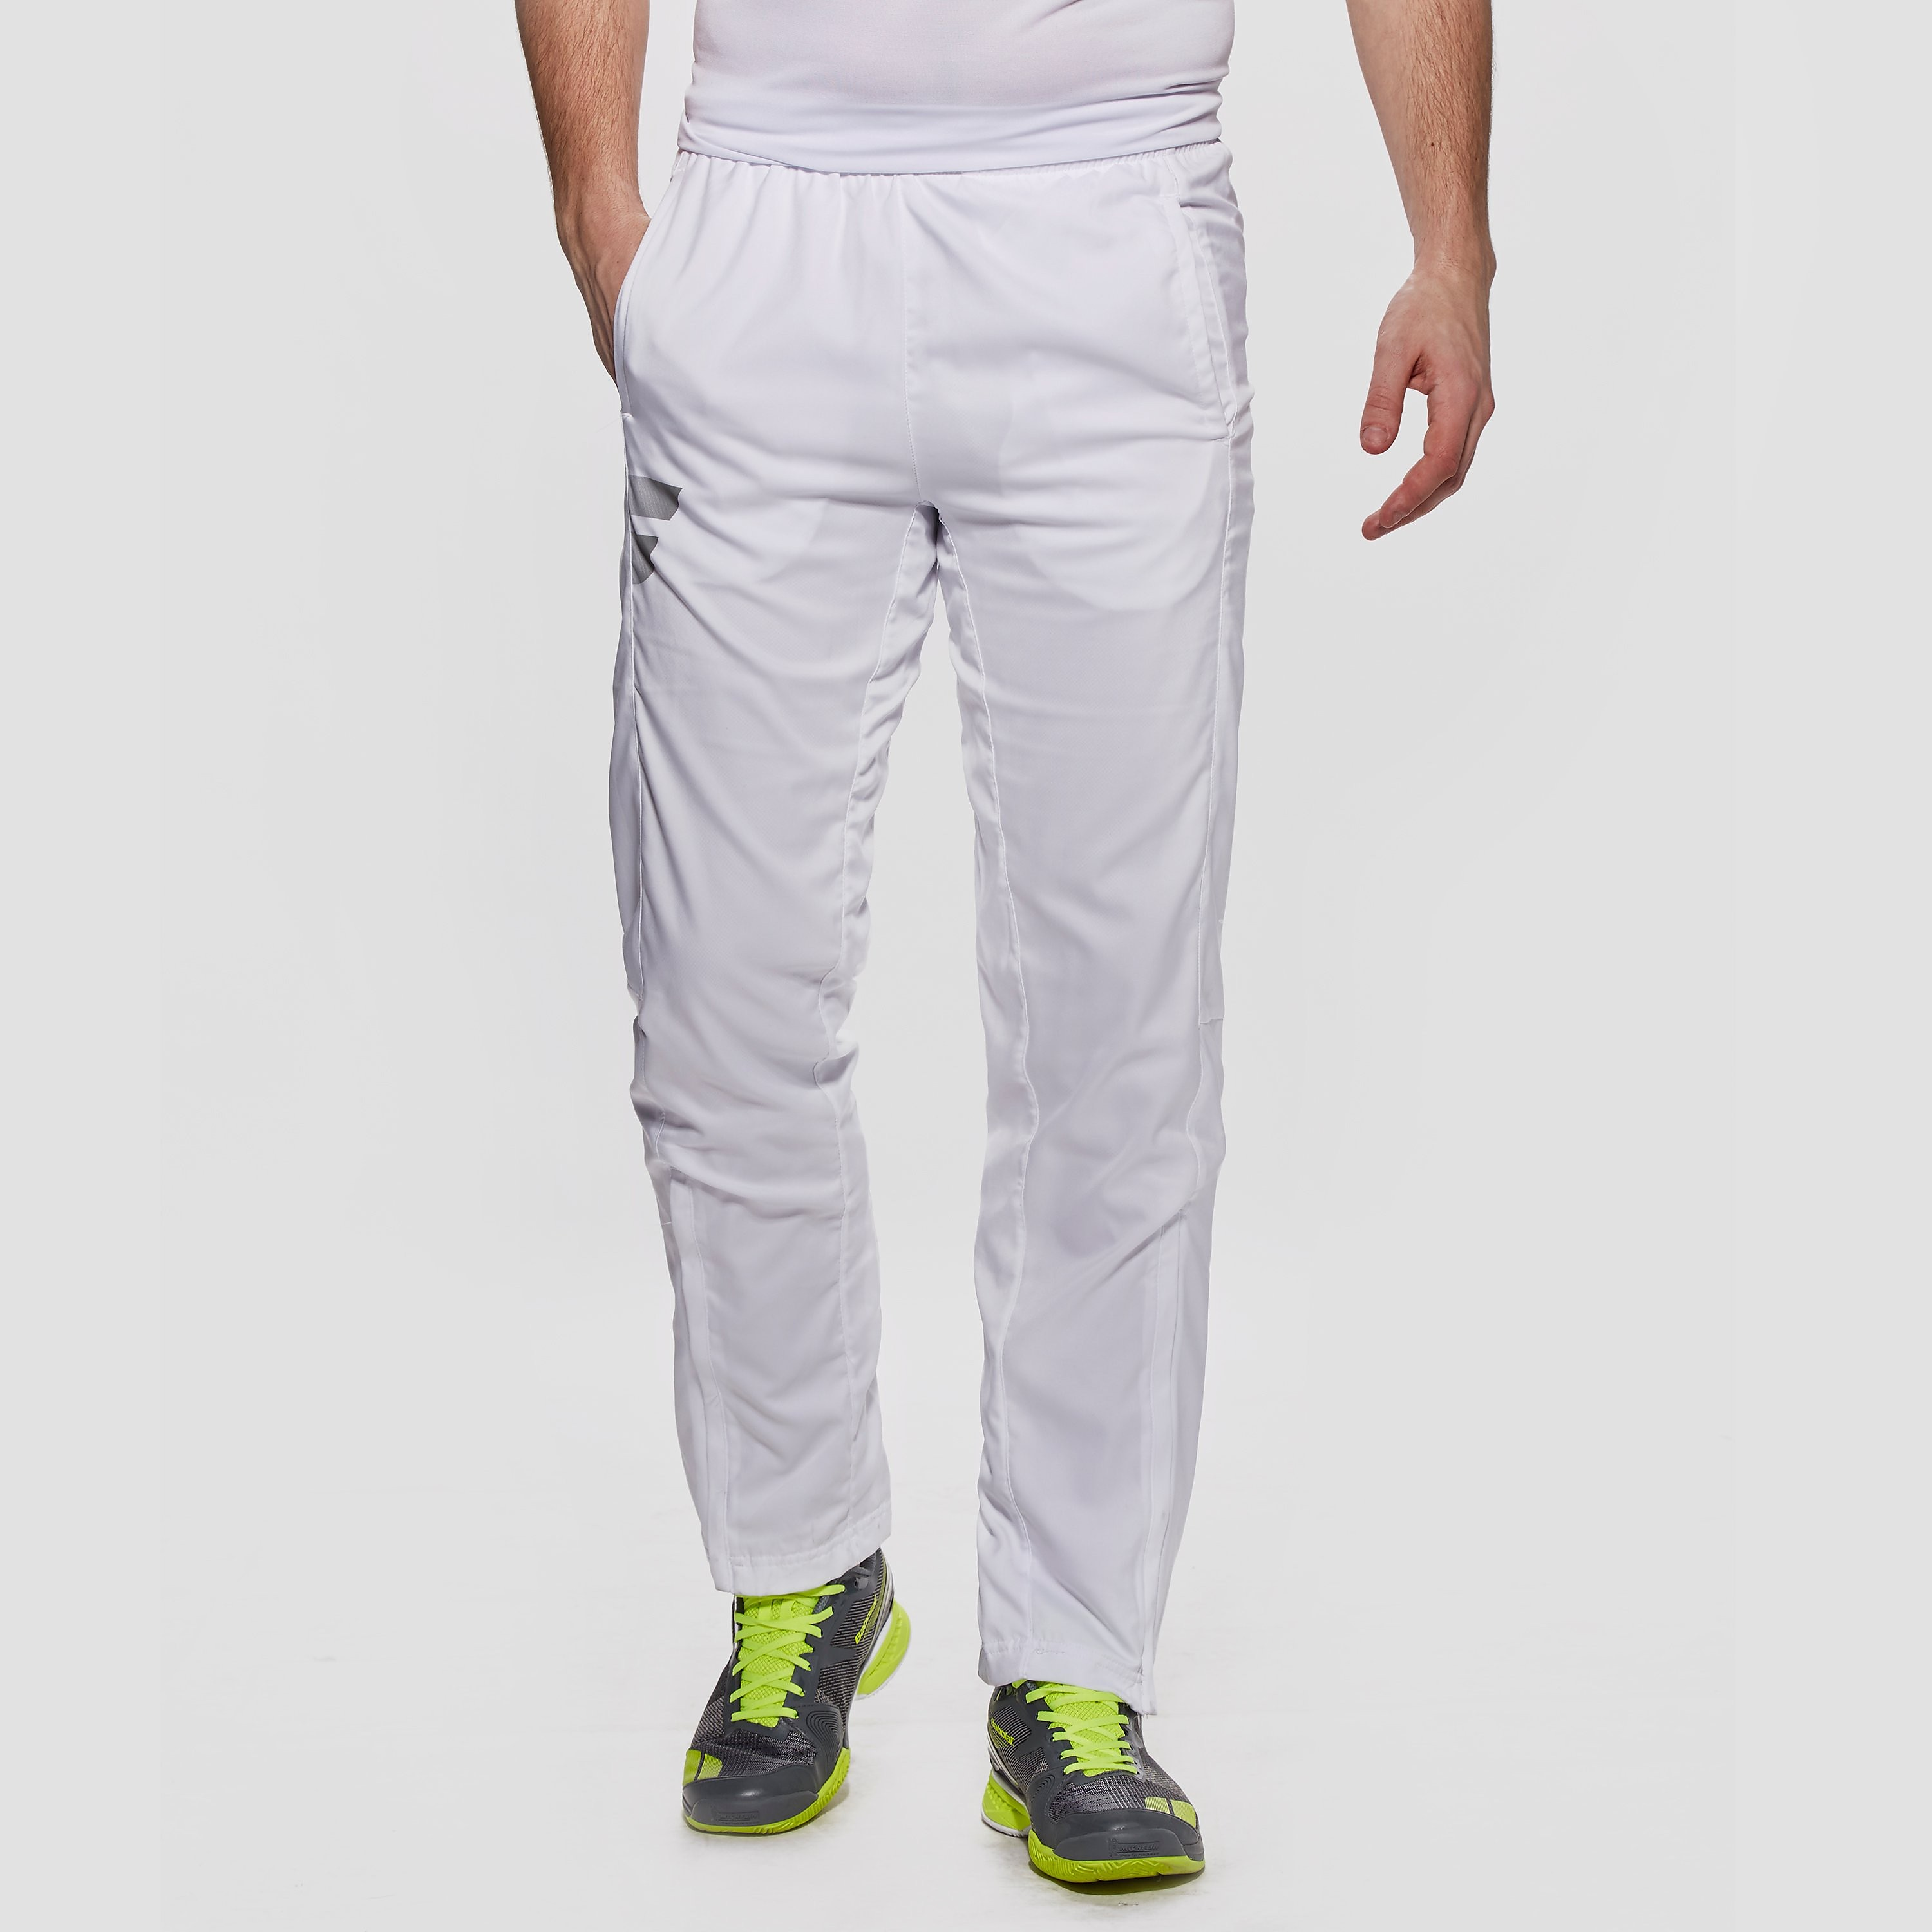 Babolat Core Club Men's Tennis Training Pants